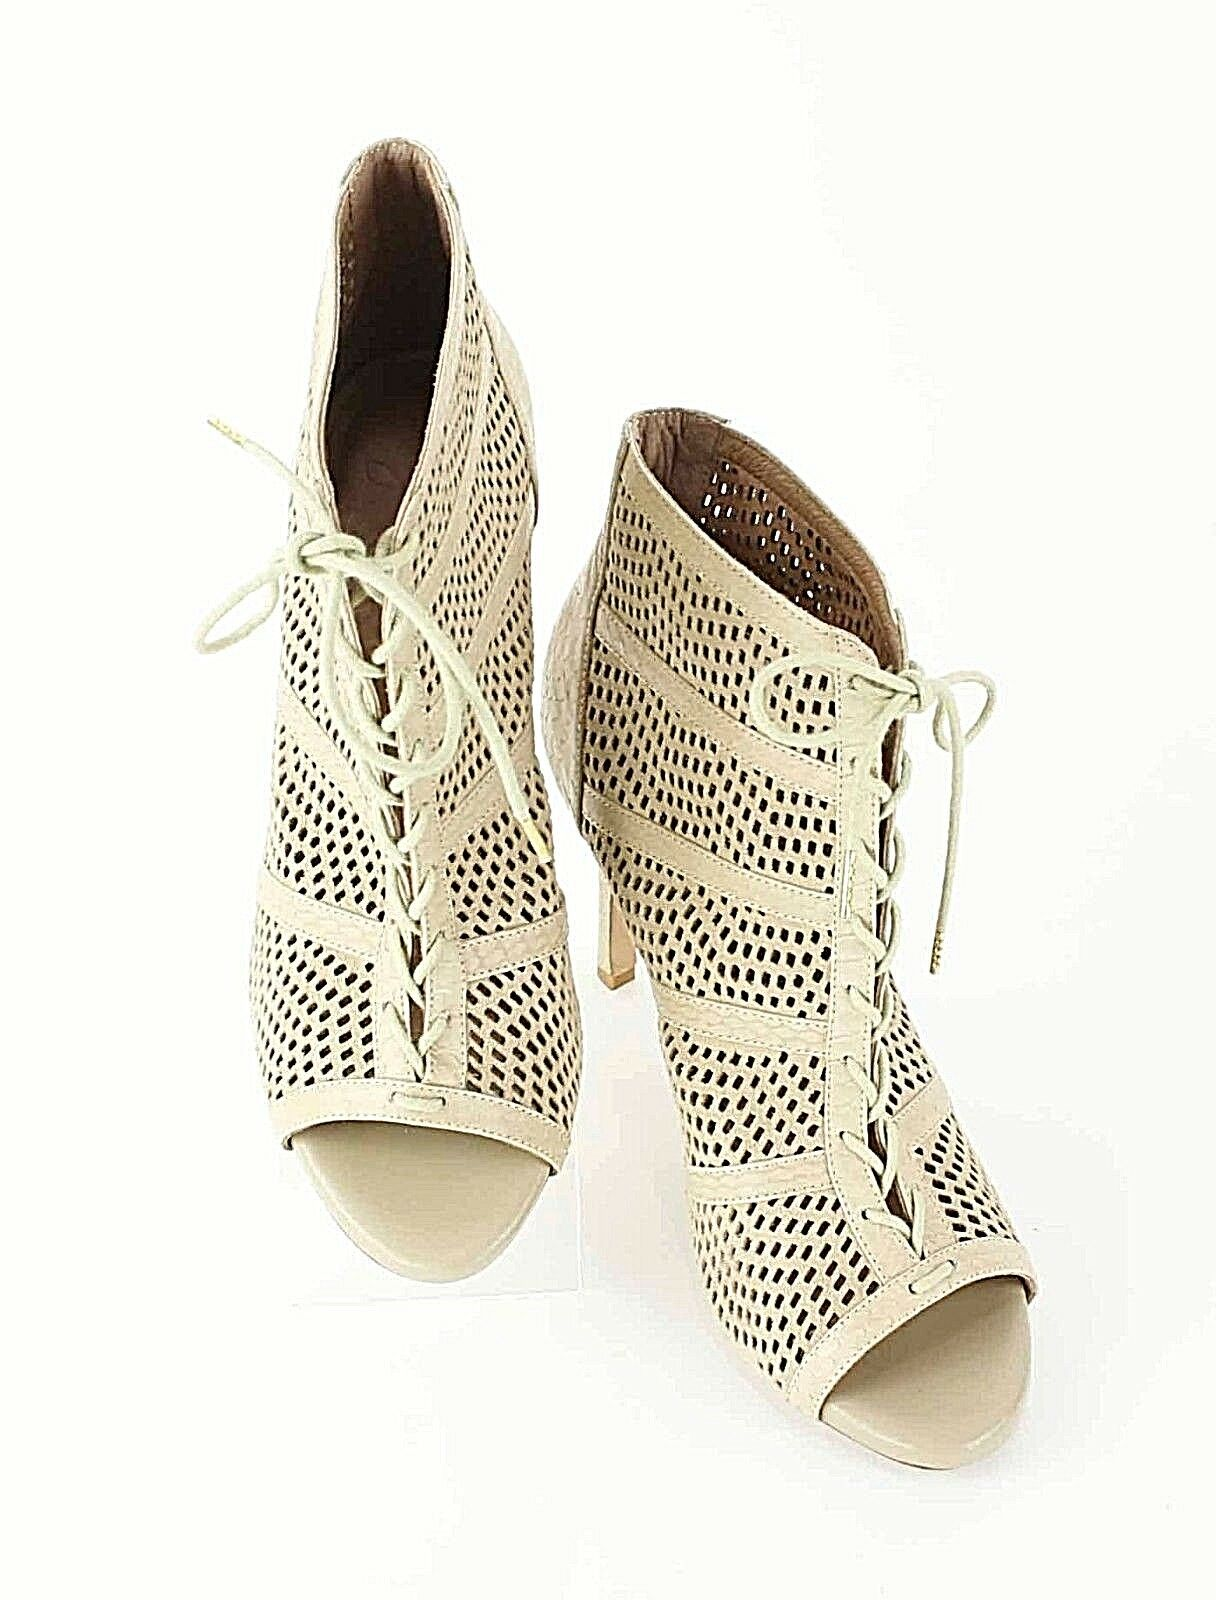 Joie Sz 38 Tan Perforated Leather Laced Open Toe High Heeled Ankle Boot E117